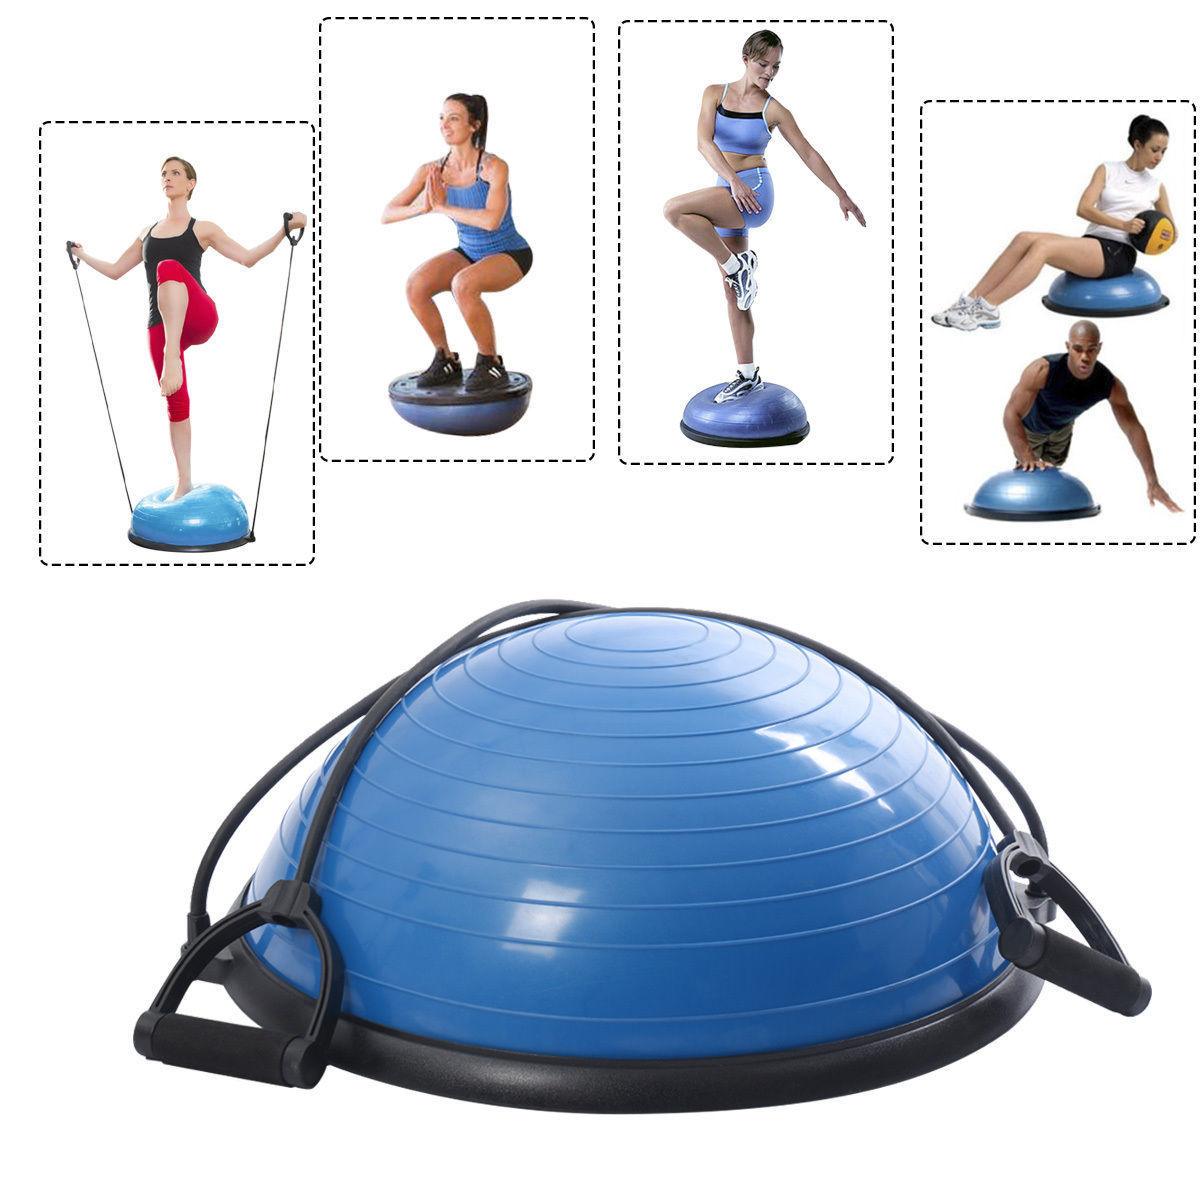 Ktaxon Fitness Blue Yoga Stability Balance Trainer Ball with Resistance Bands and Pump Exercise Workout Kit